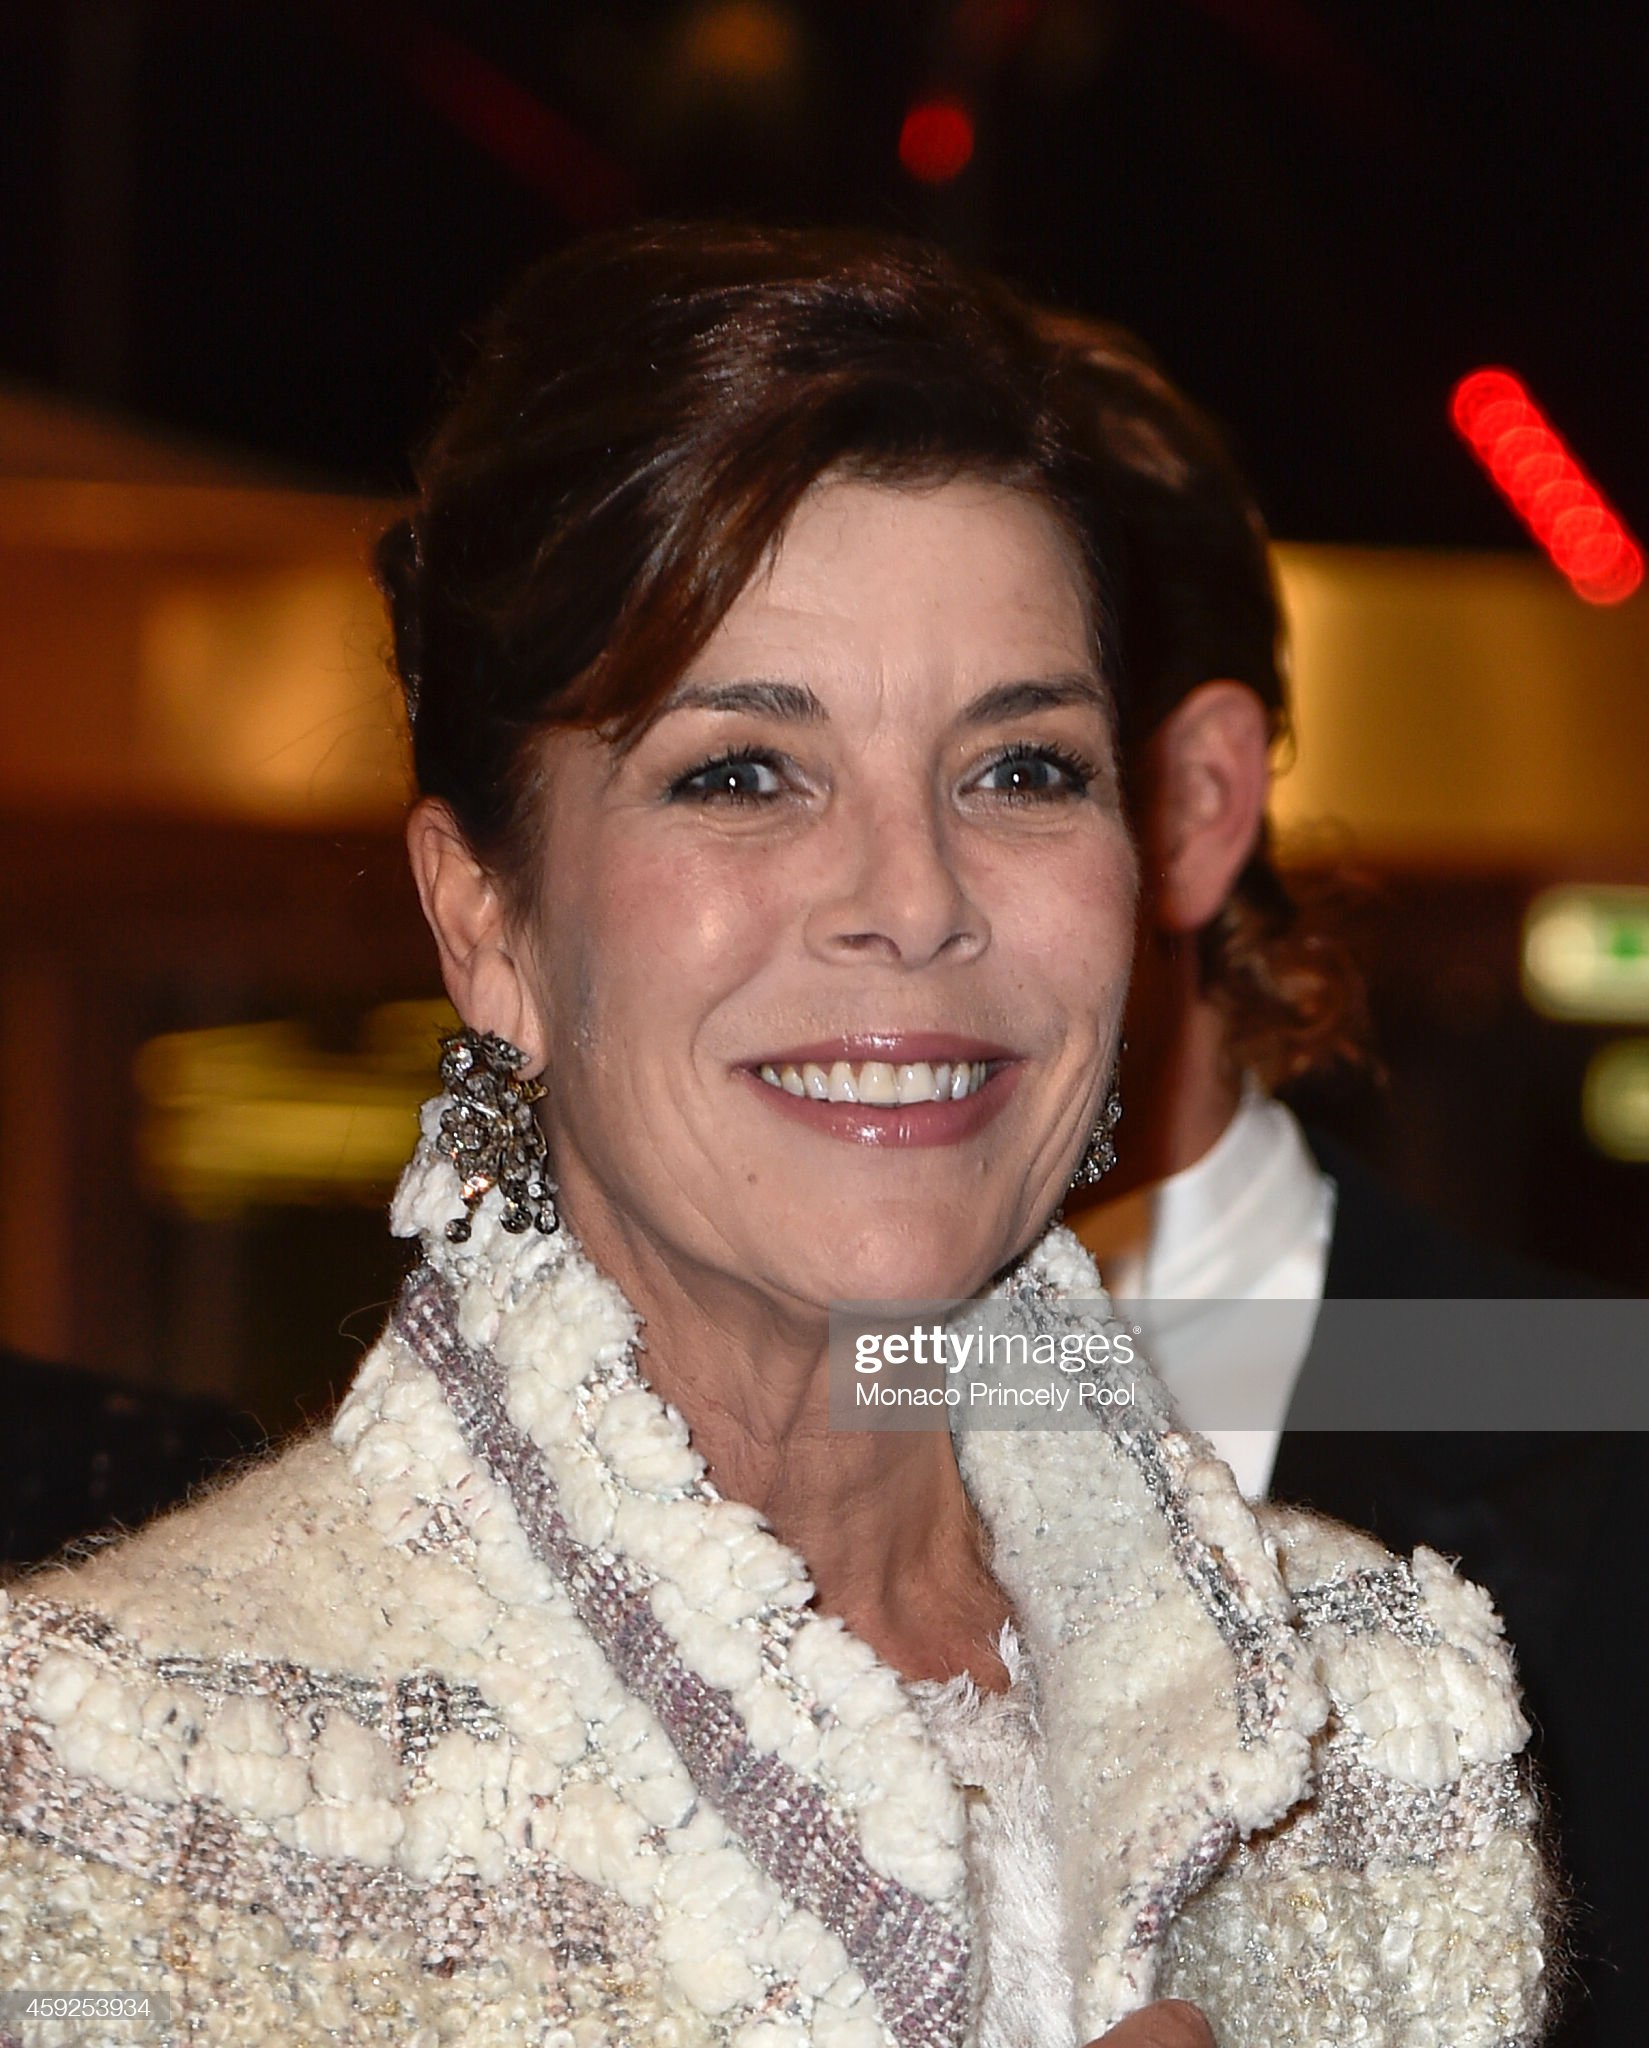 Monaco National Day 2014 - Gala : News Photo